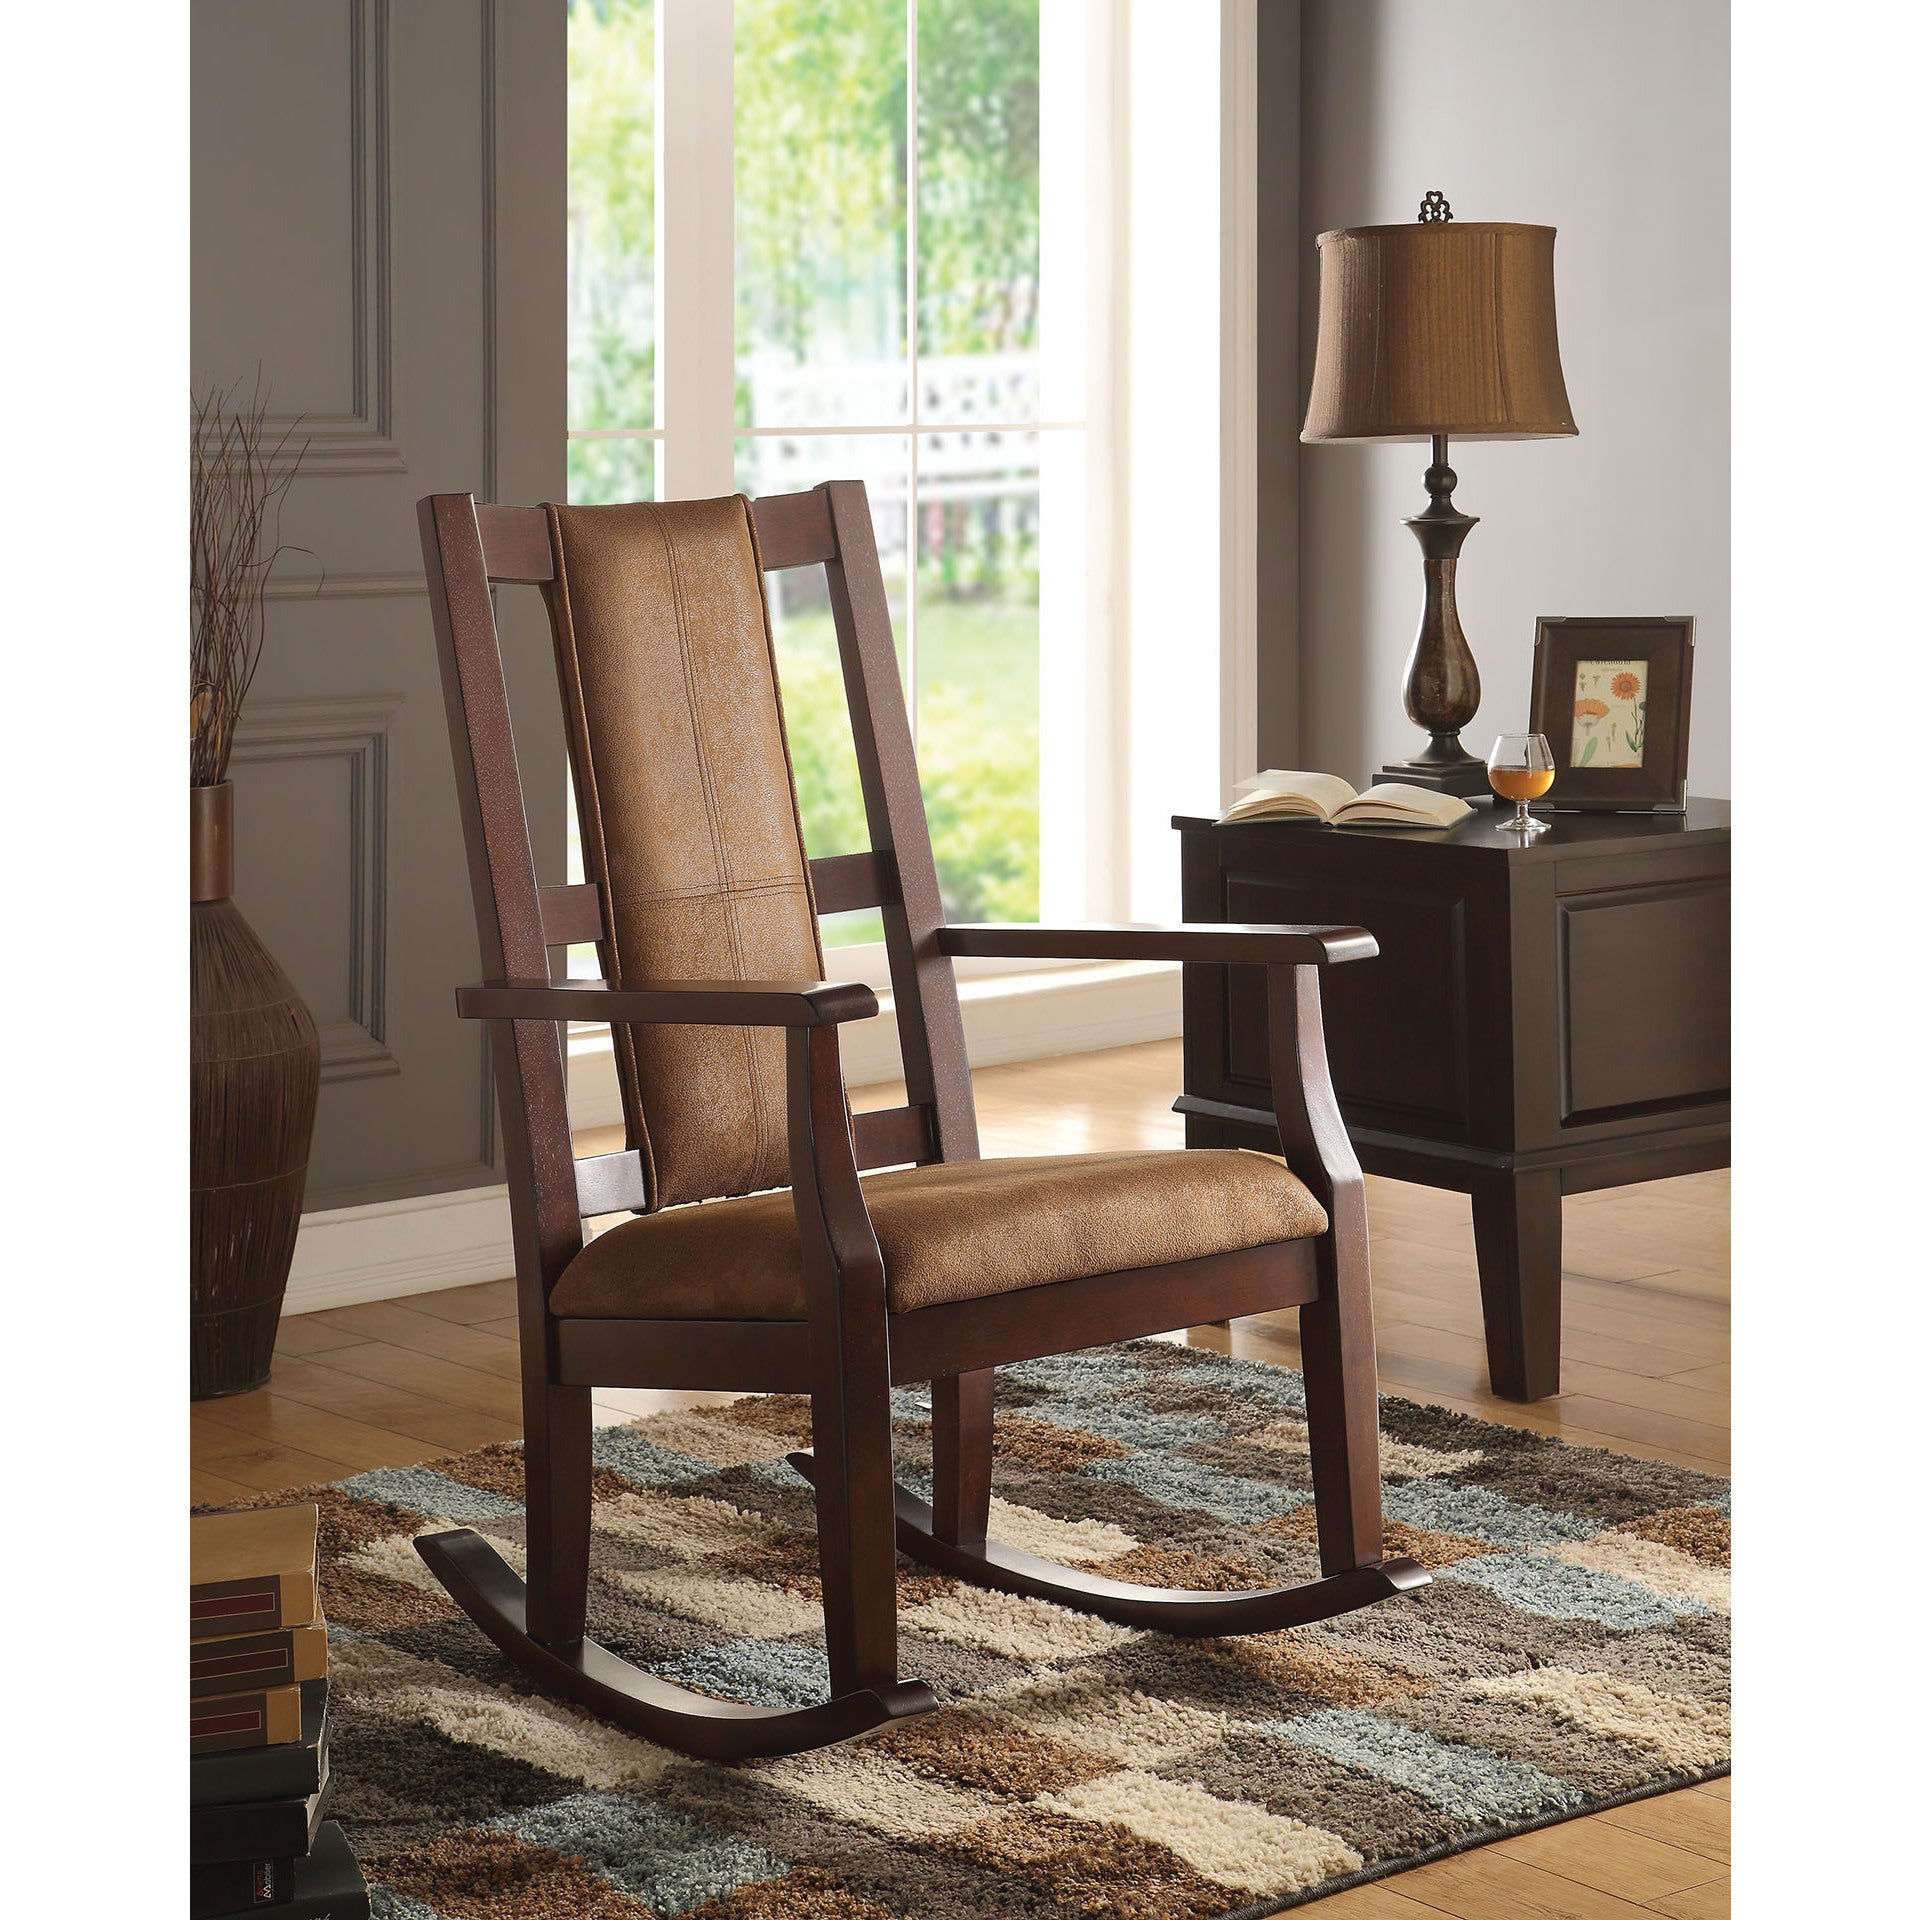 Popular Photo of Espresso Brown Rocking Chairs